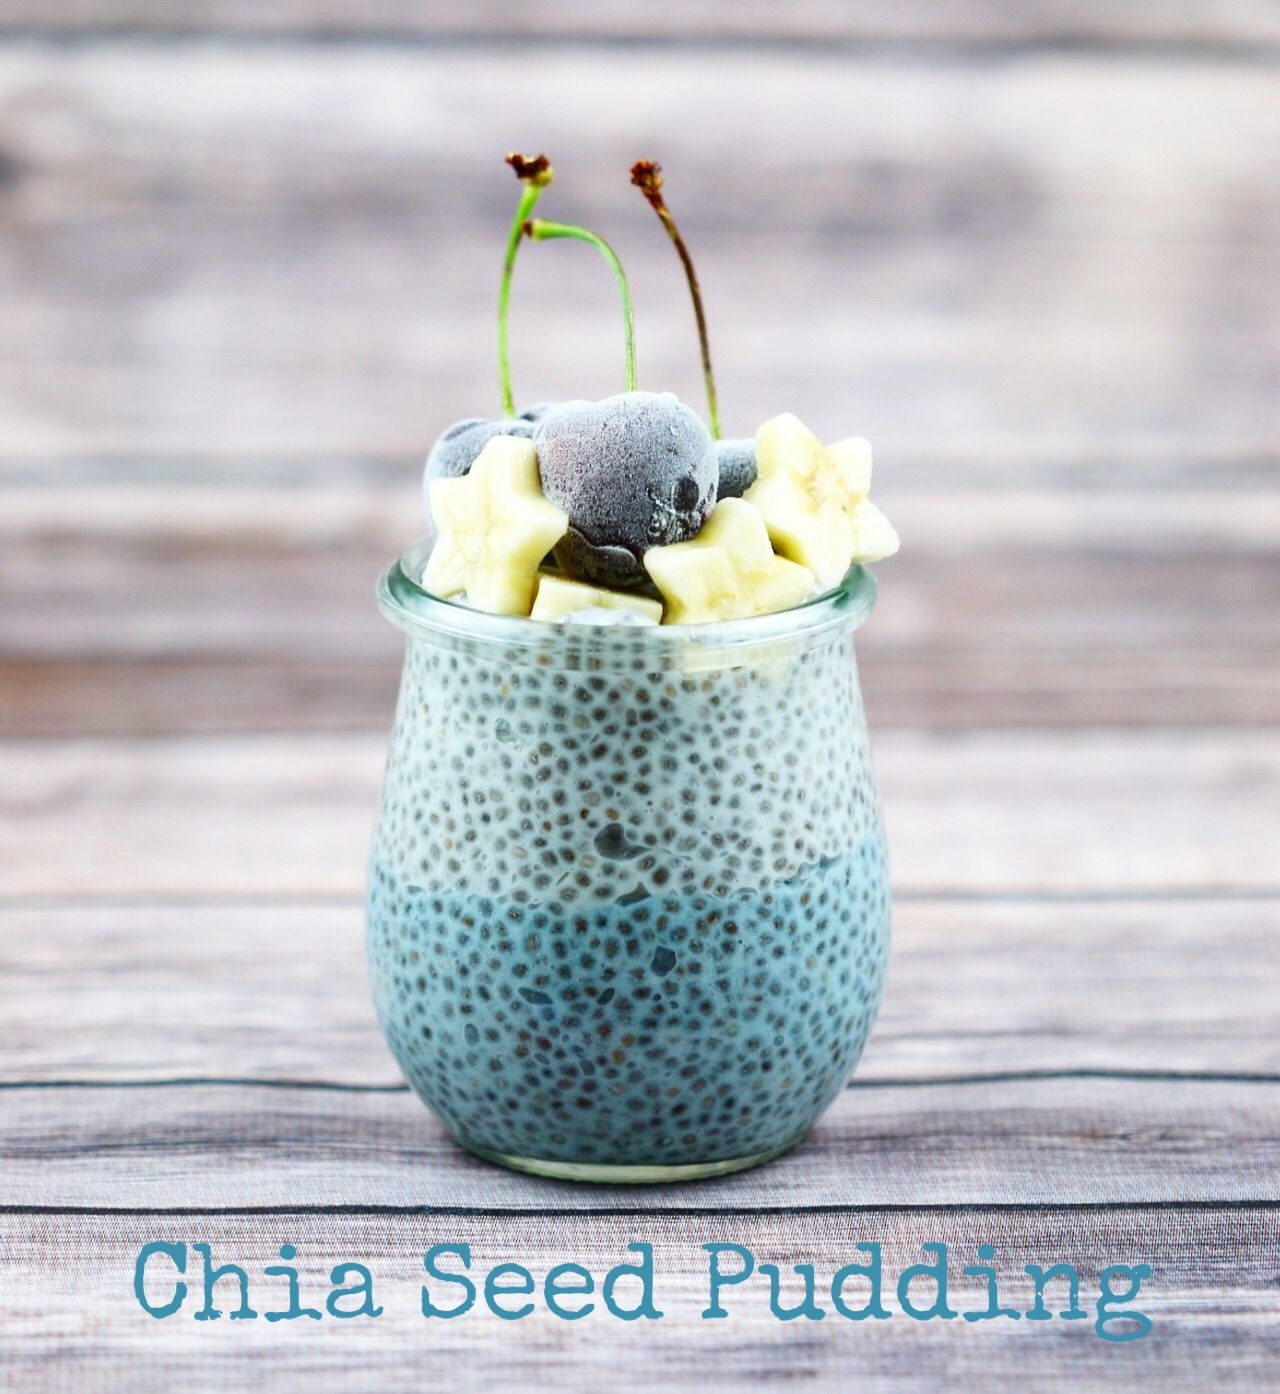 Colorful chia pudding made with natural vegetable based food dye ...